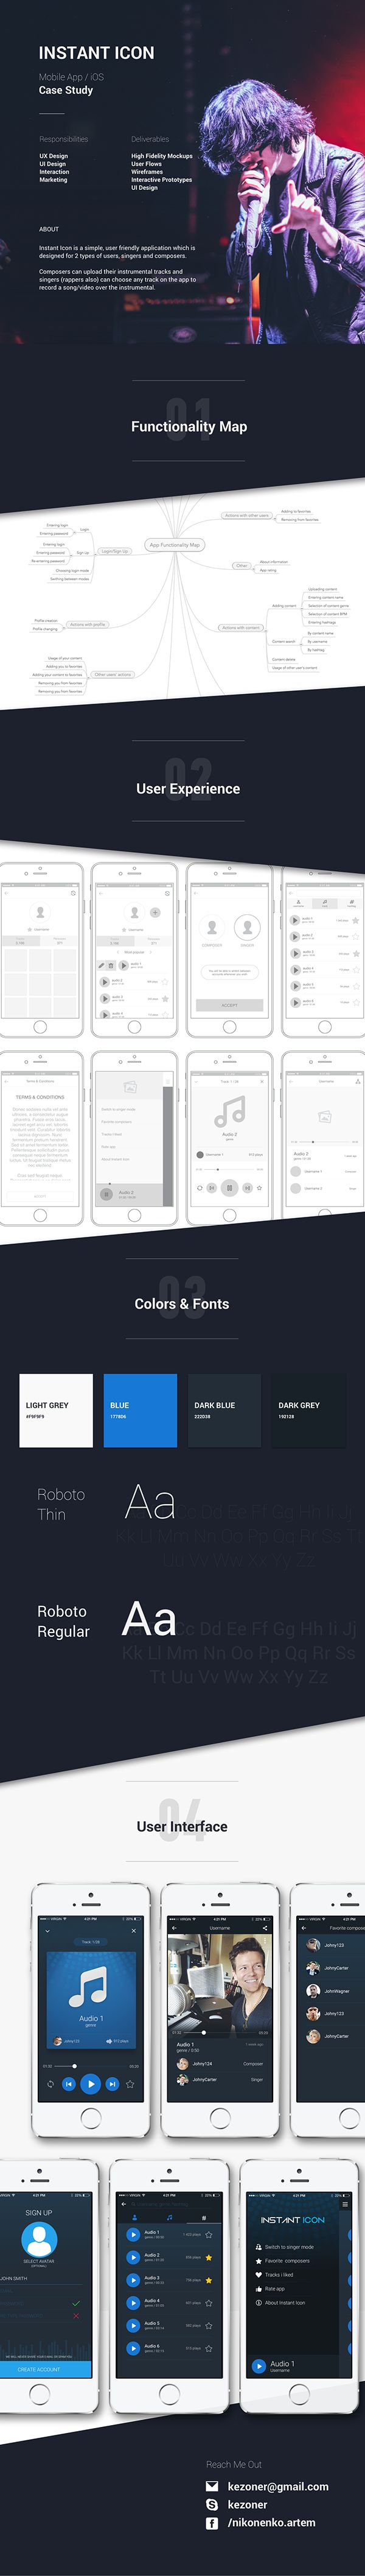 Instant Icon is a simple, user friendly application which is designed for 2 types of users, singers and composers. Composers can upload their instrumental tracks and singers (rappers also) can choose any track on the app to record a song/video over the instrumental.  Mobile application case study (UX and UI)